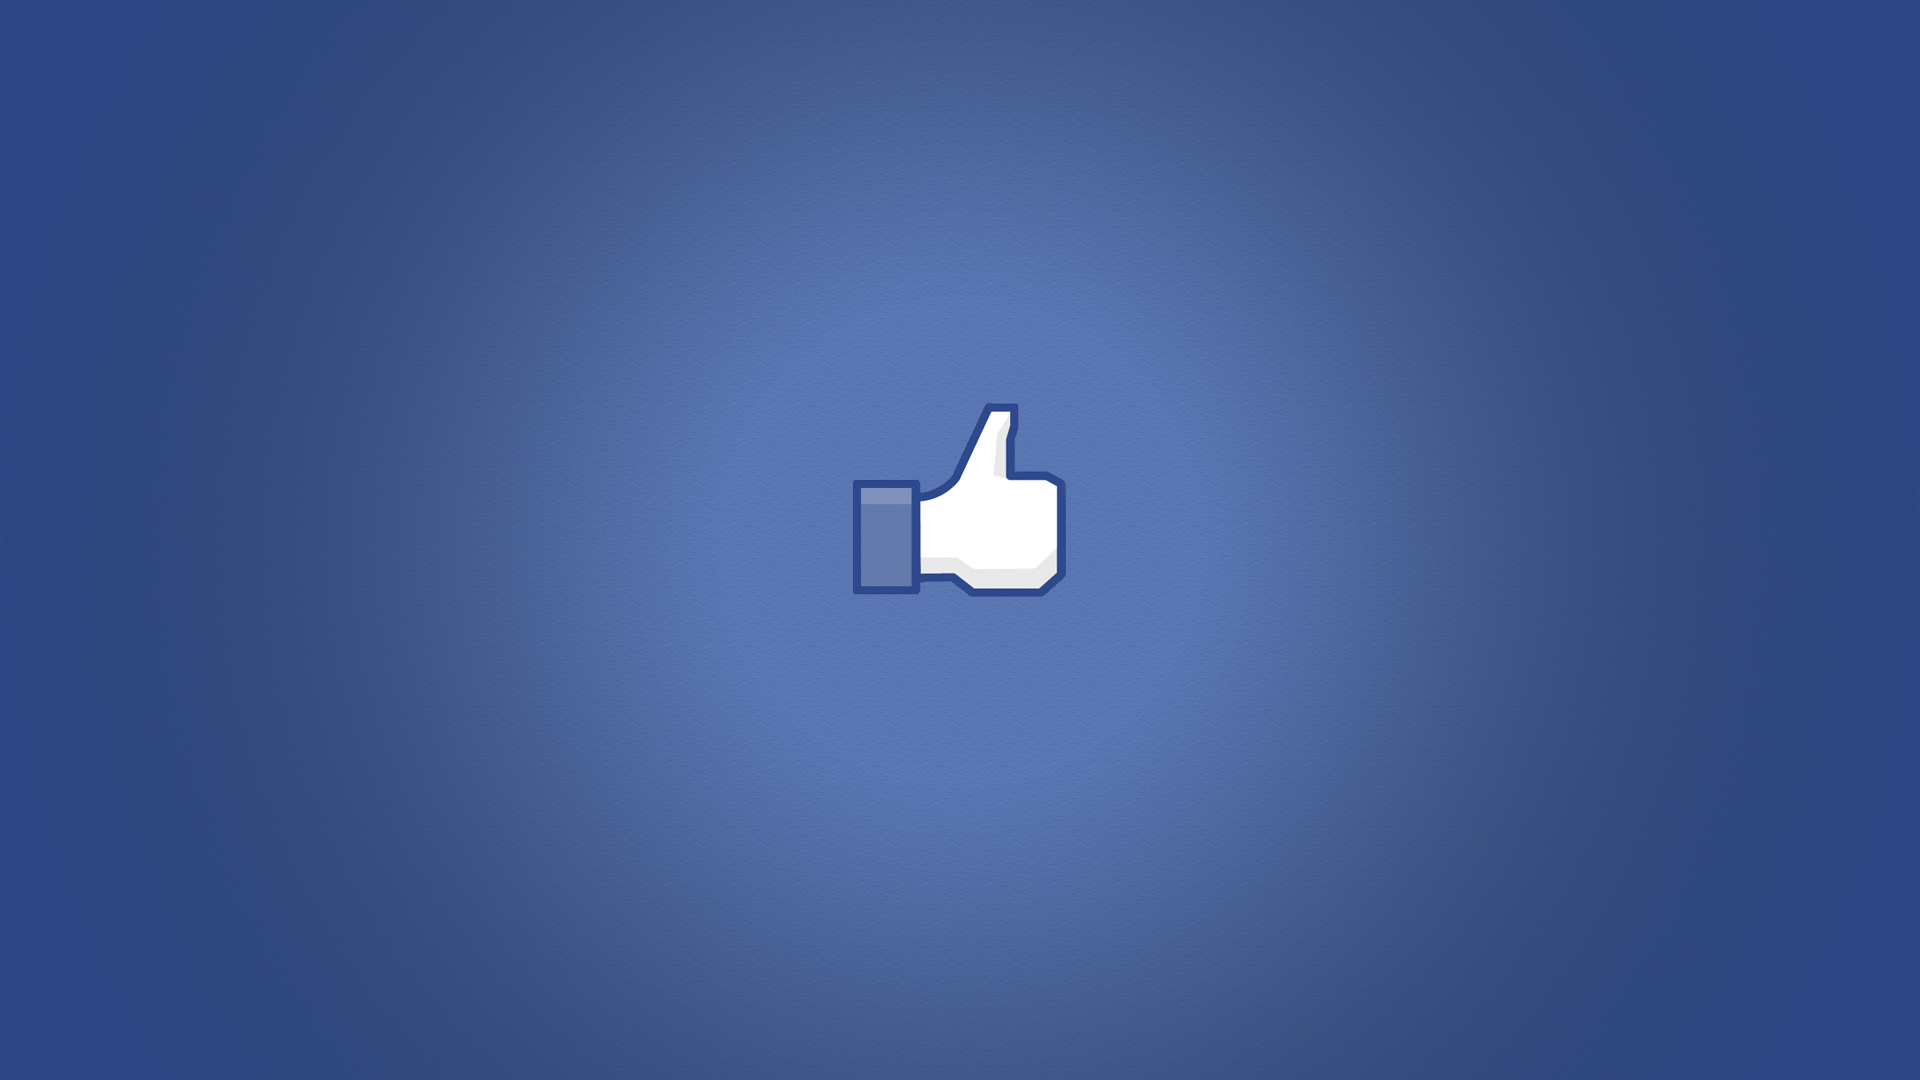 Facebook Wallpapers Backgrounds Hd 16